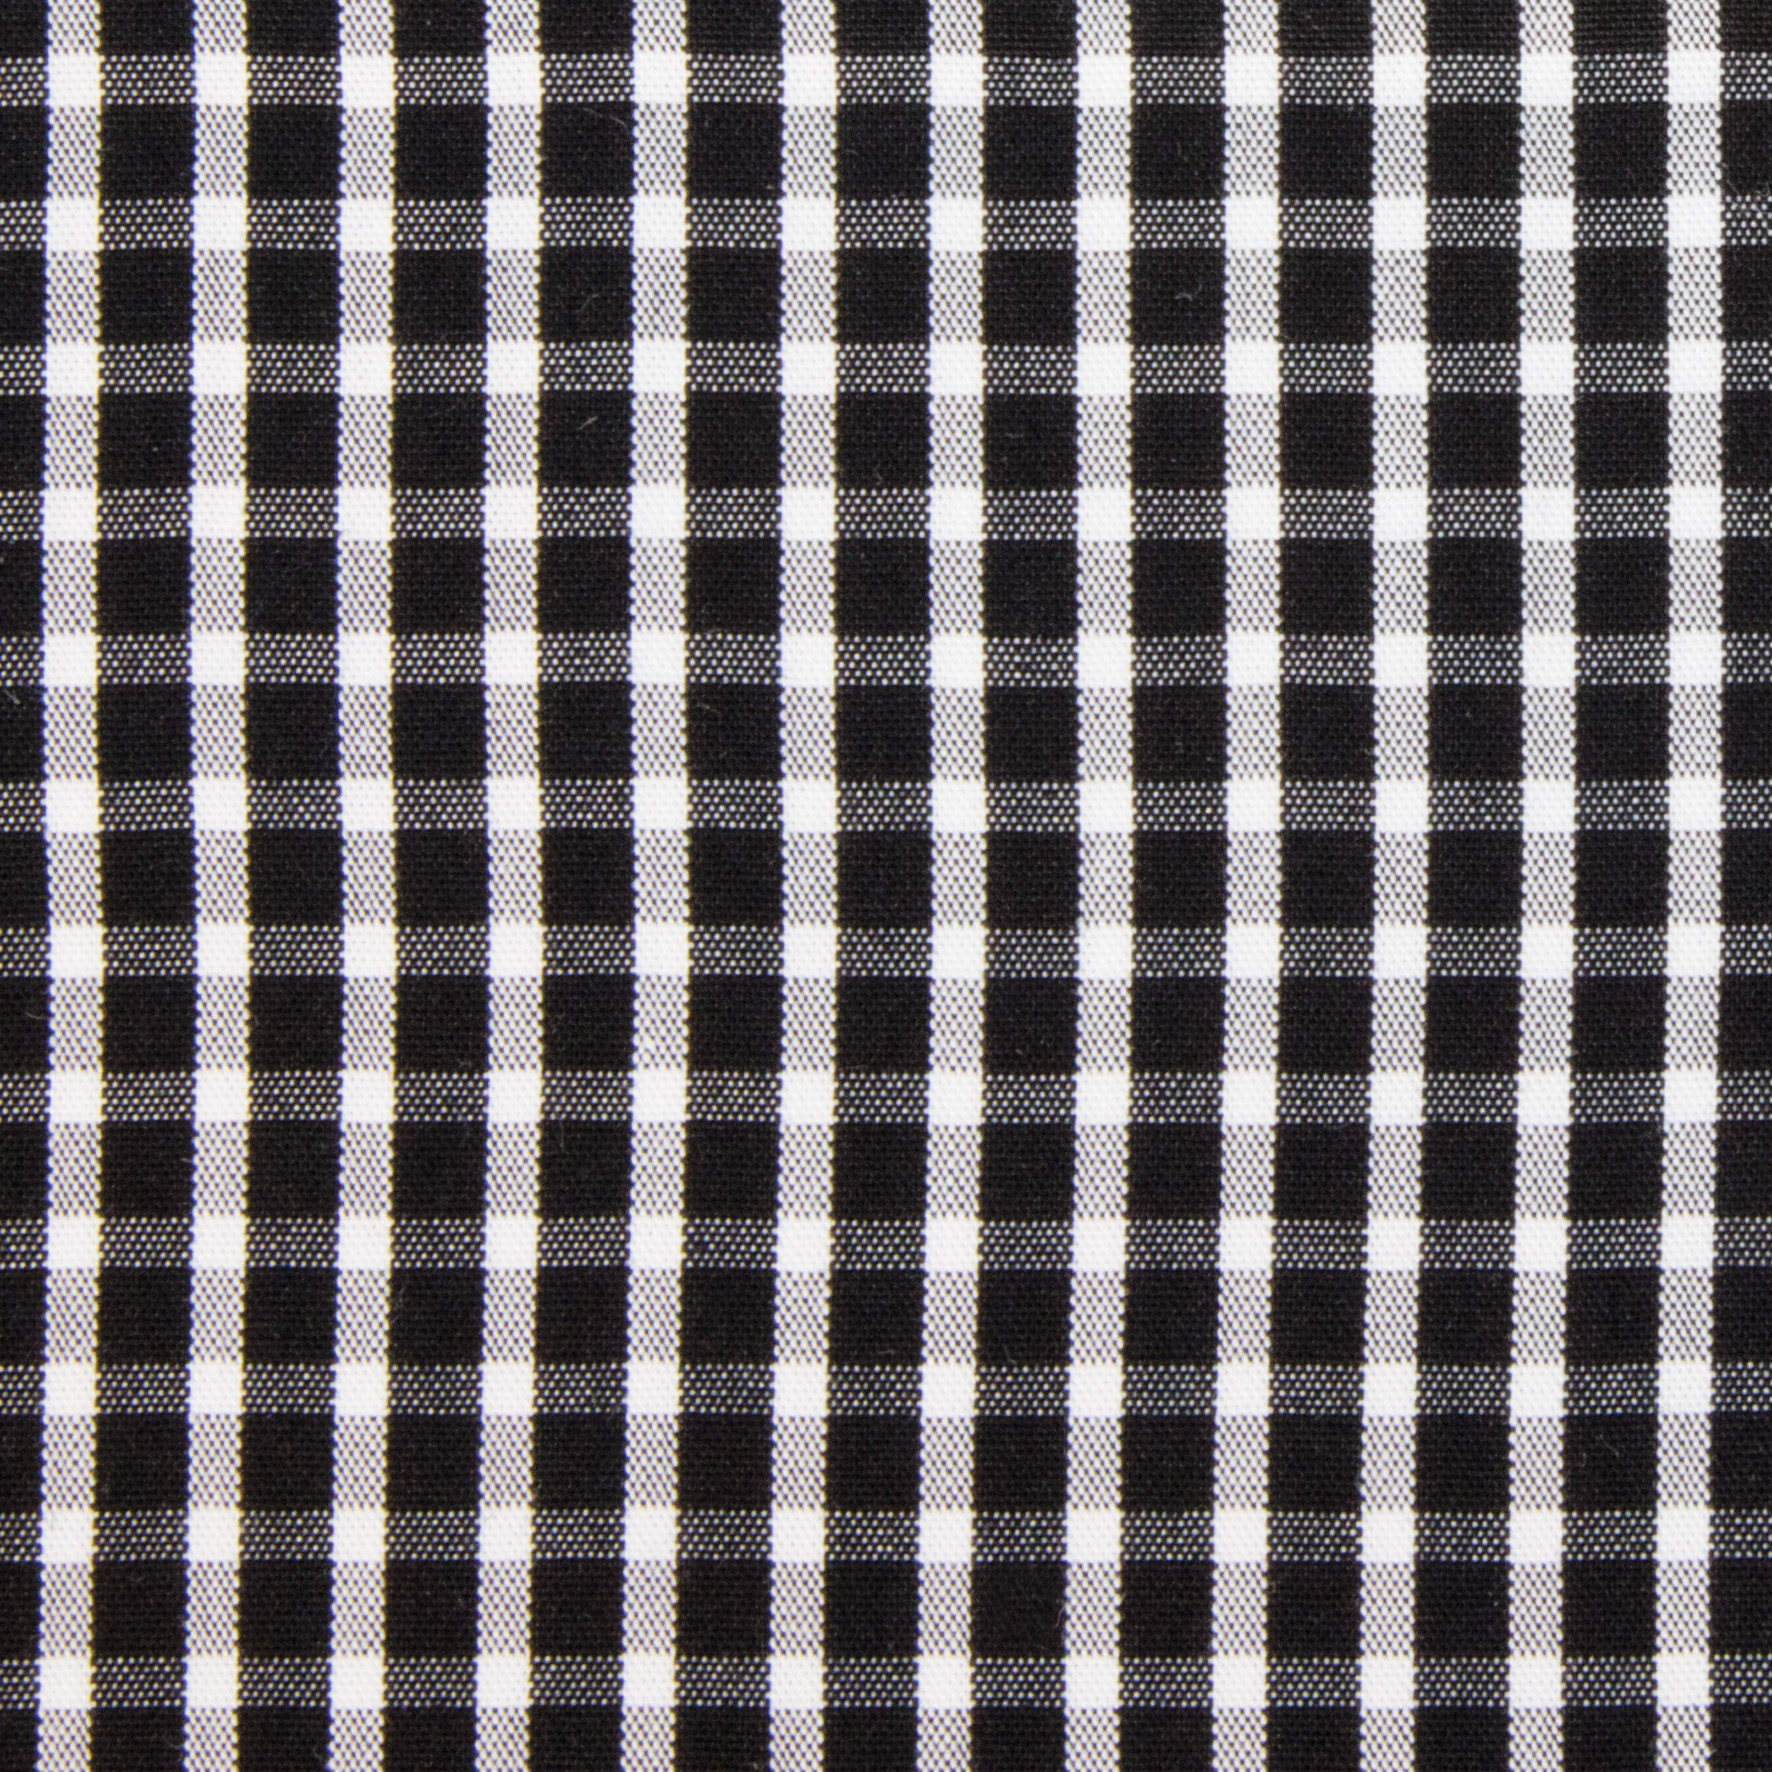 Buy tailor made shirts online - Antonio Range - Broad Black Check